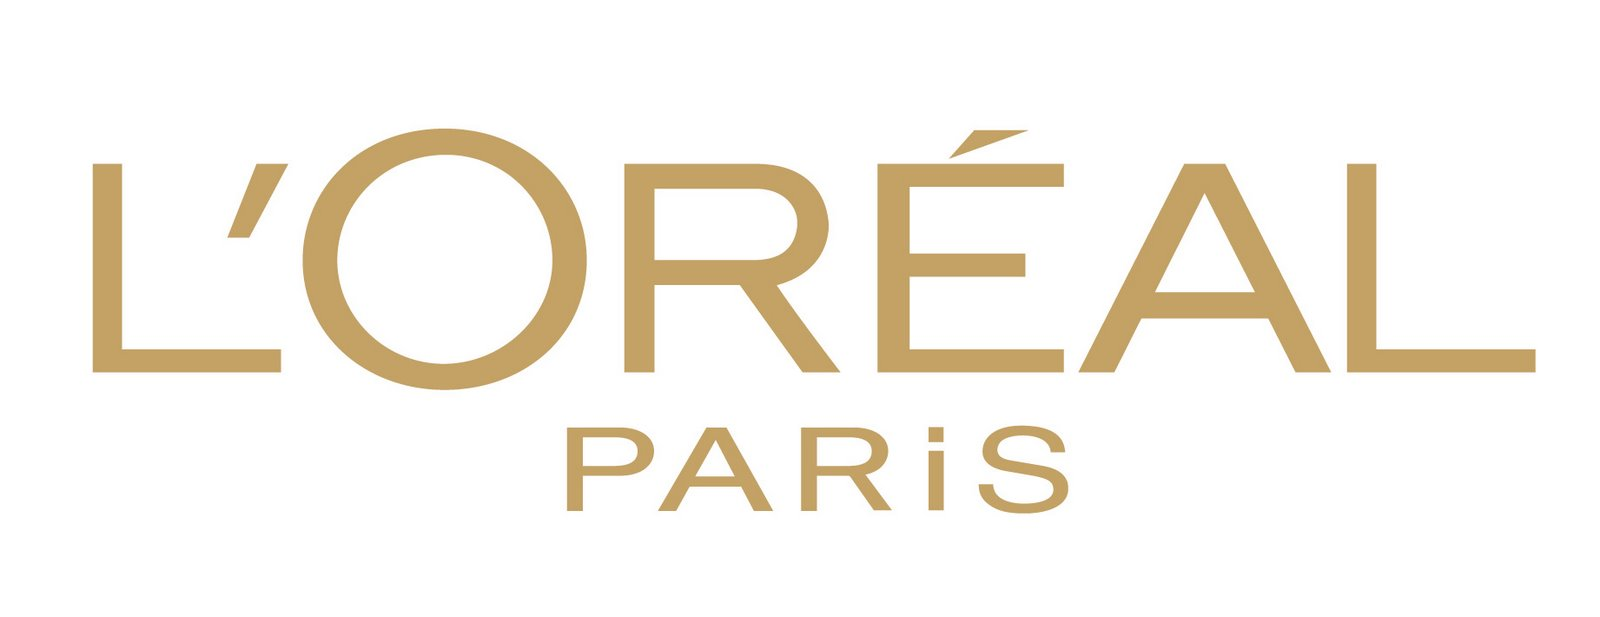 Save up to $8.00 on L'Oreal Paris Products